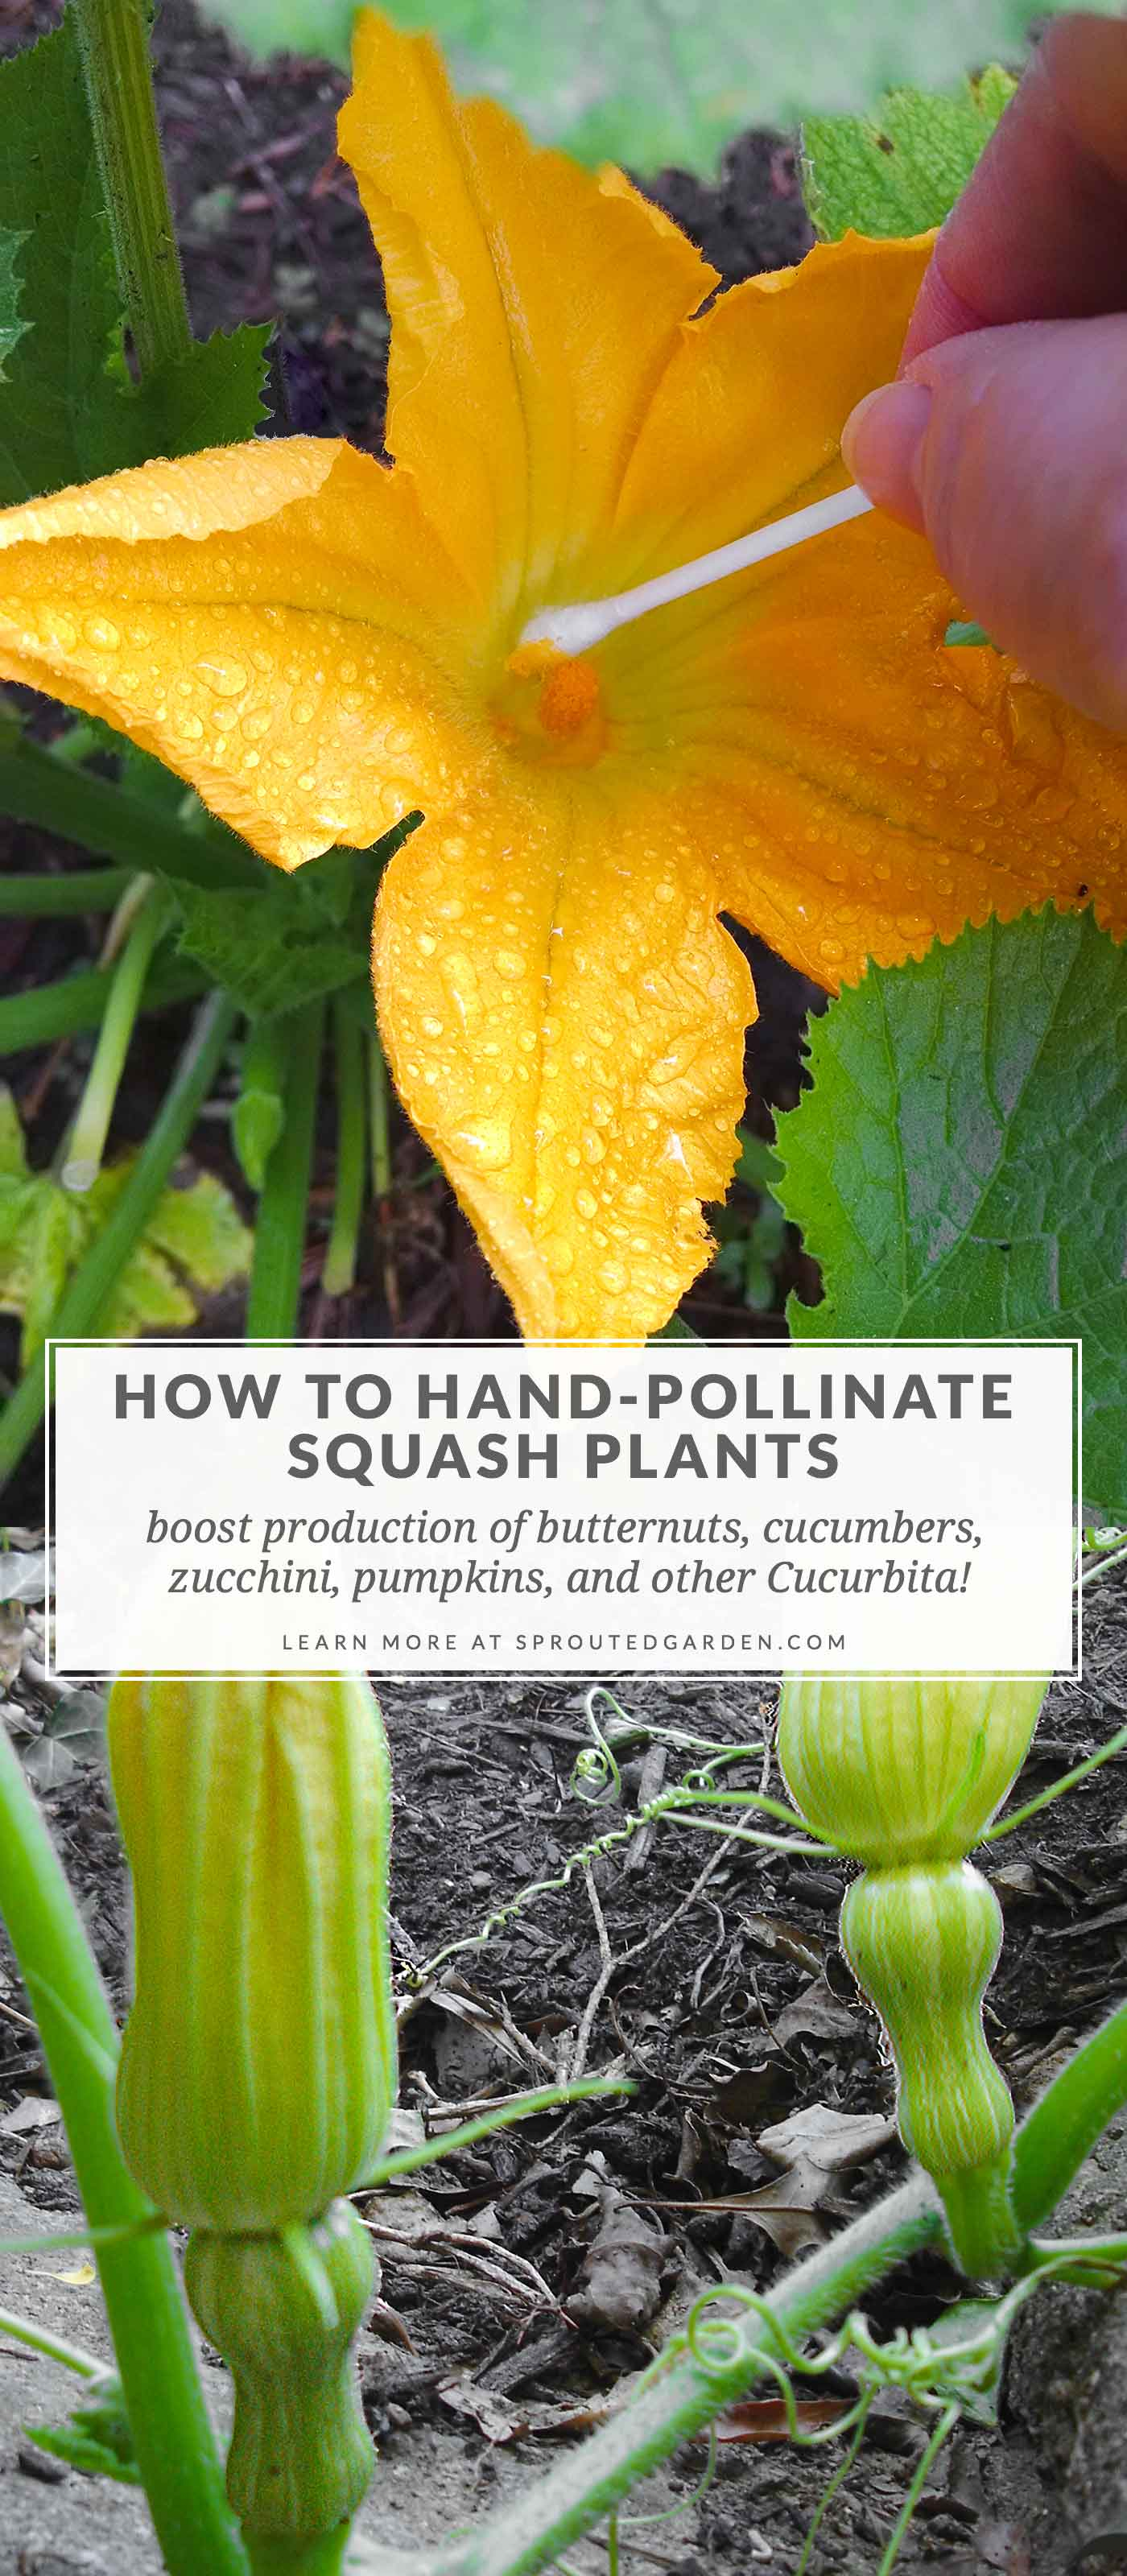 How to hand-pollinate squash plants.